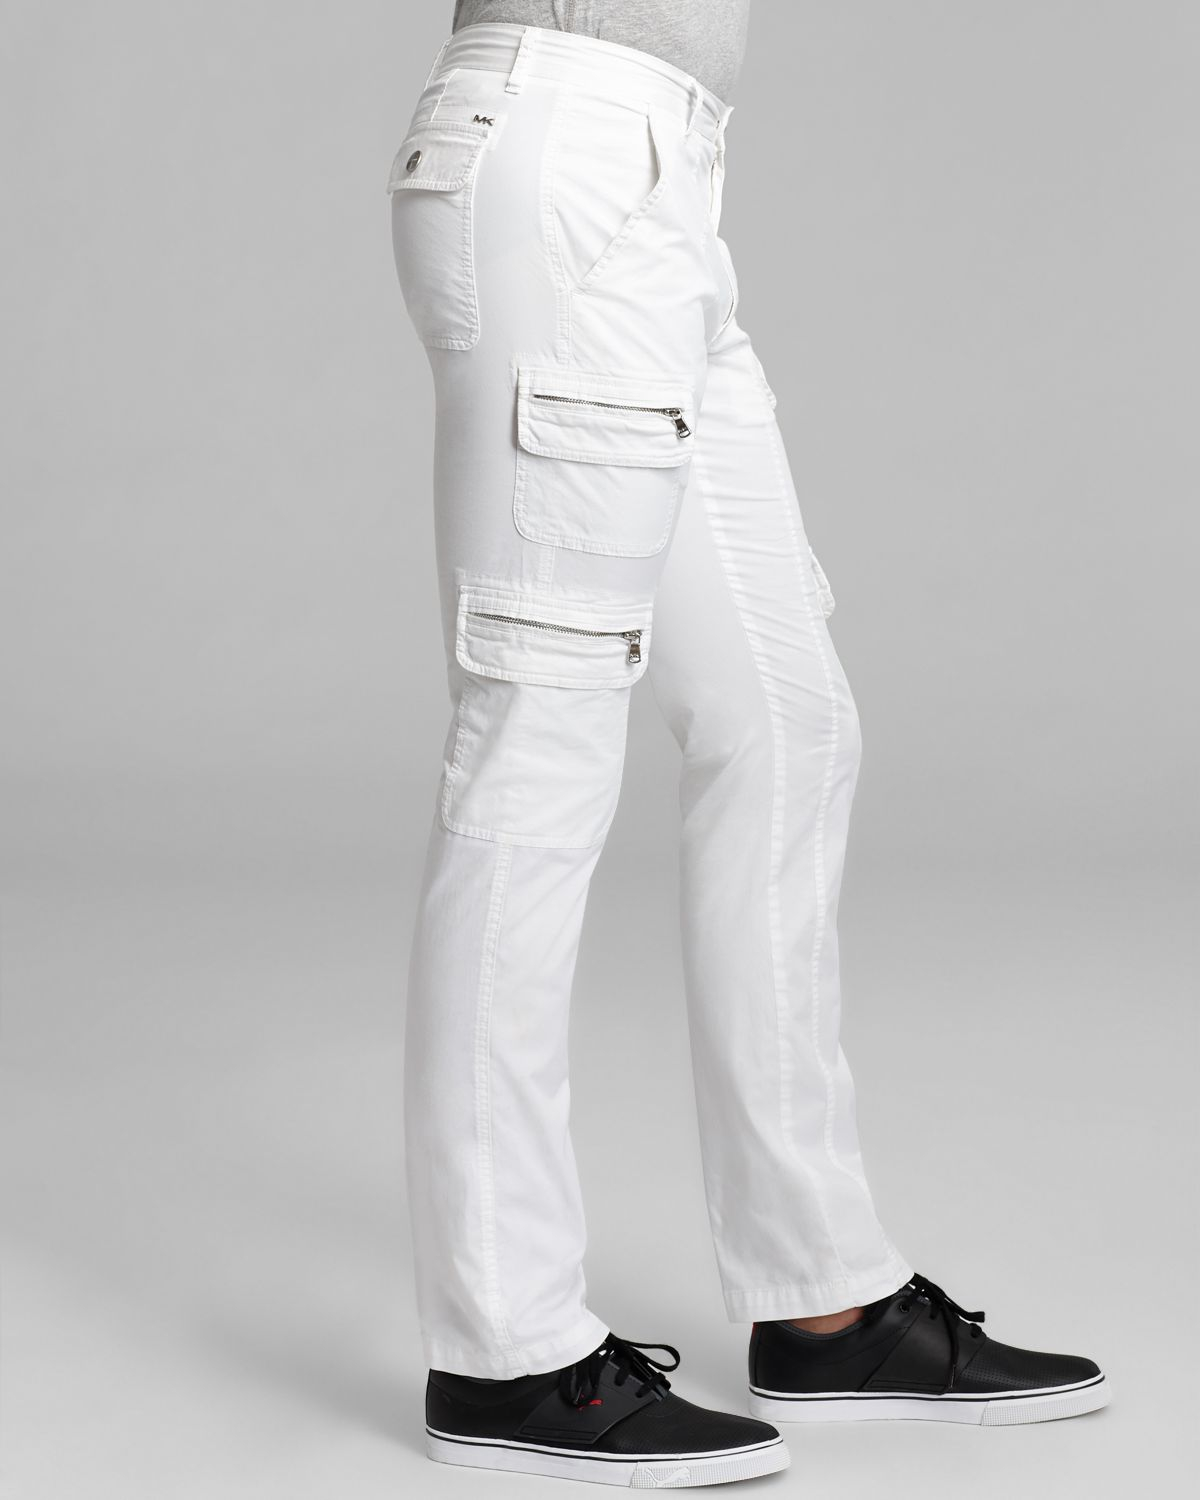 white cargo pants lyst michael kors twill cargo in white for 28642